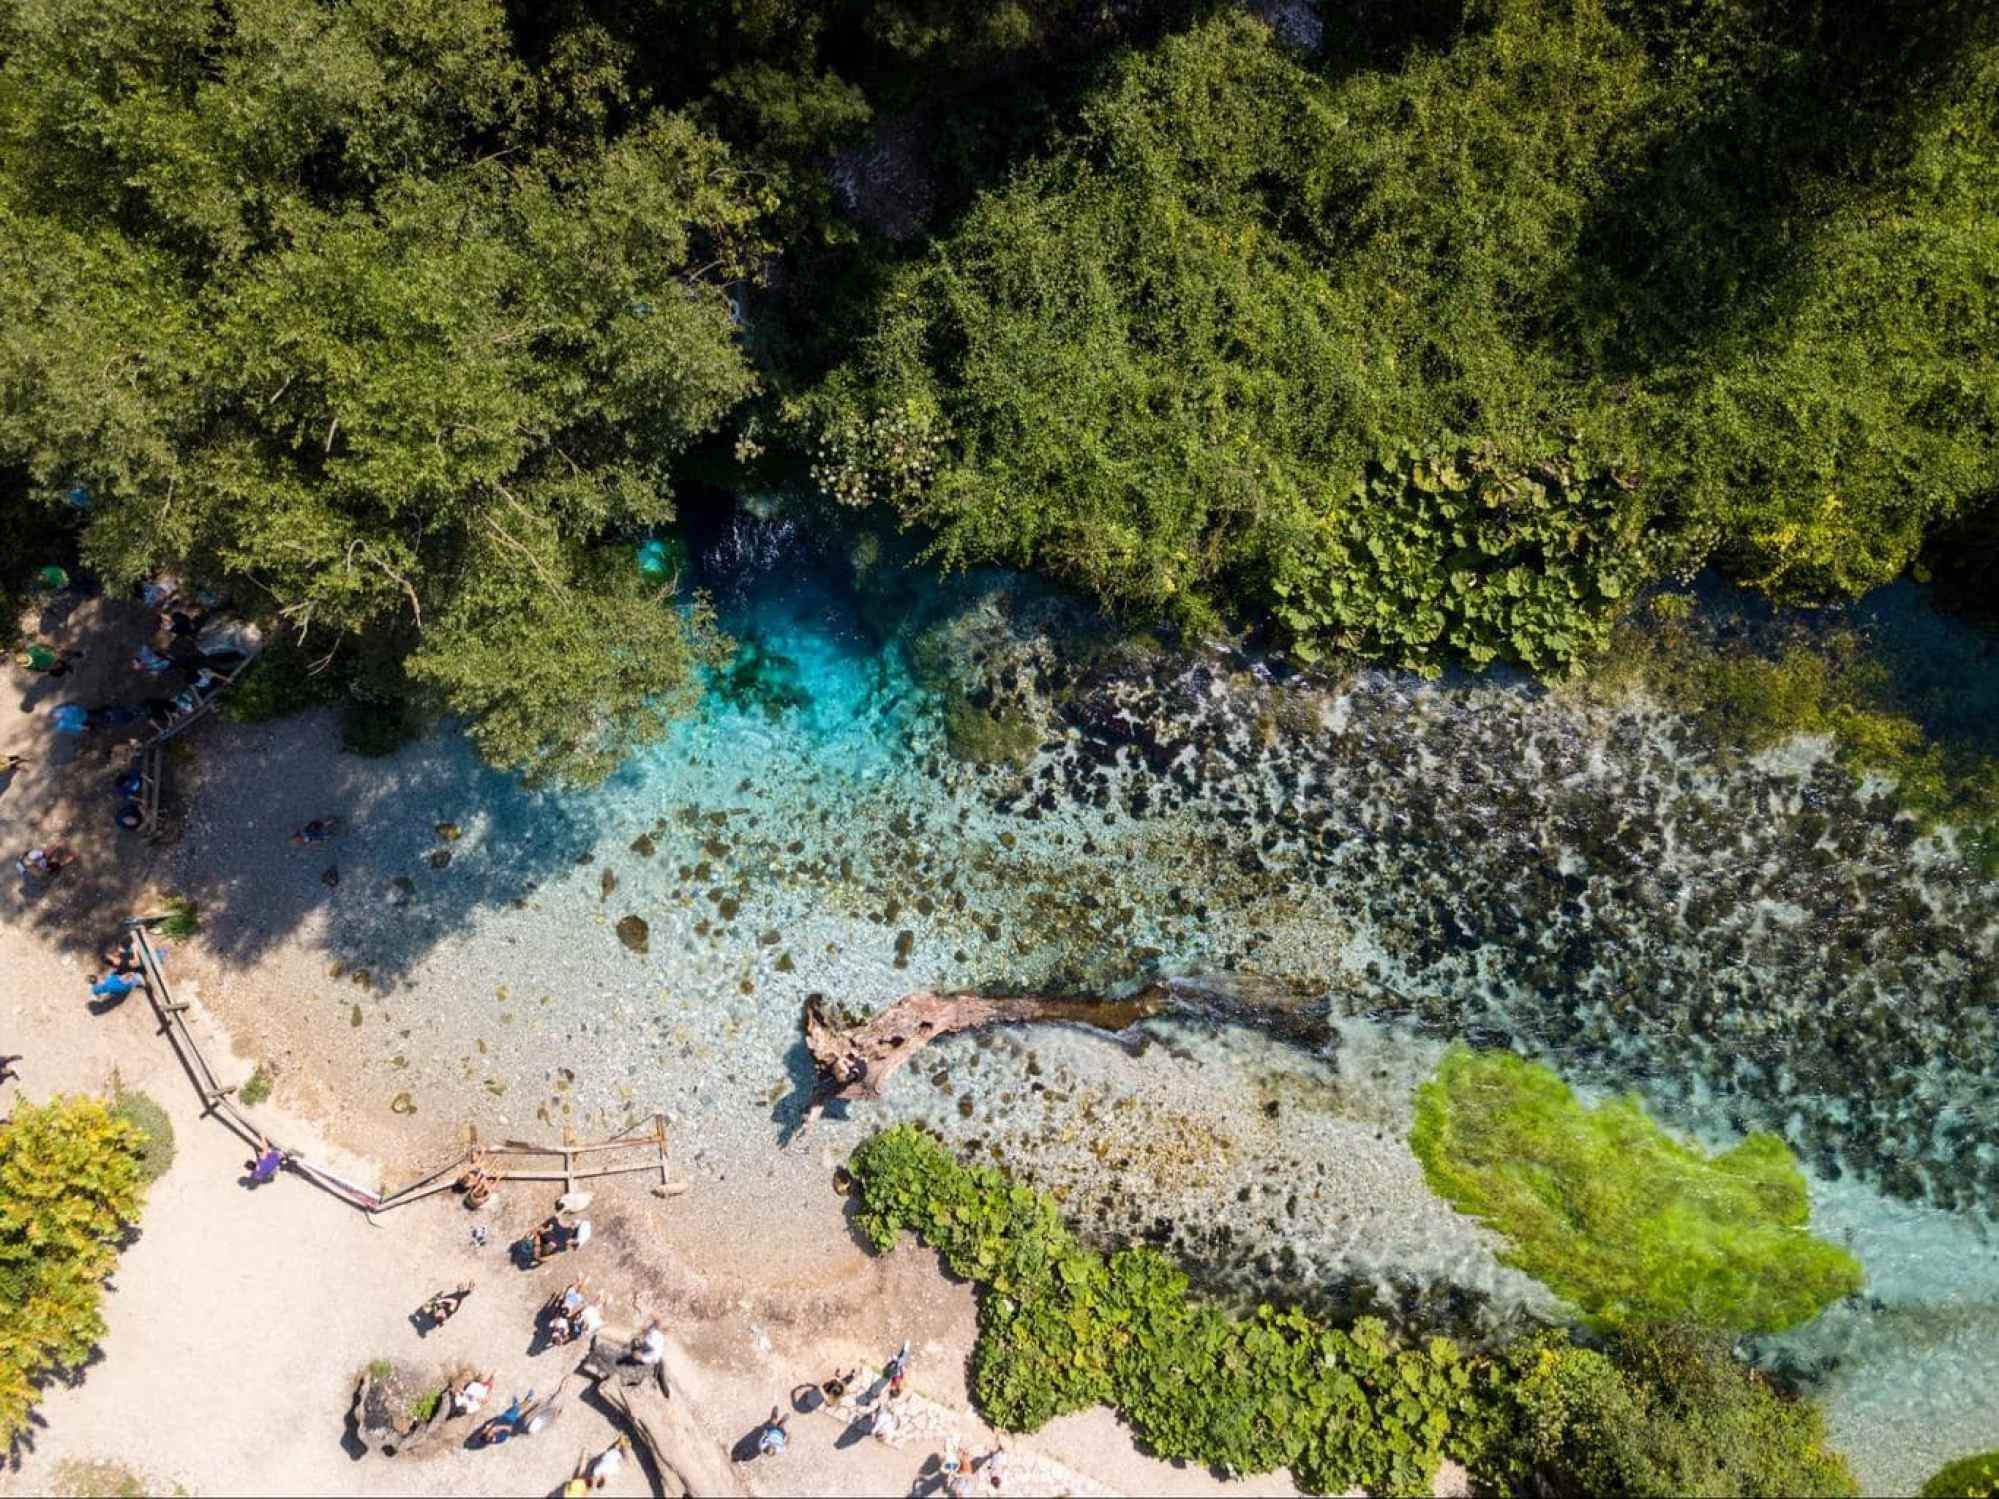 Drone shot of The Blue Eye